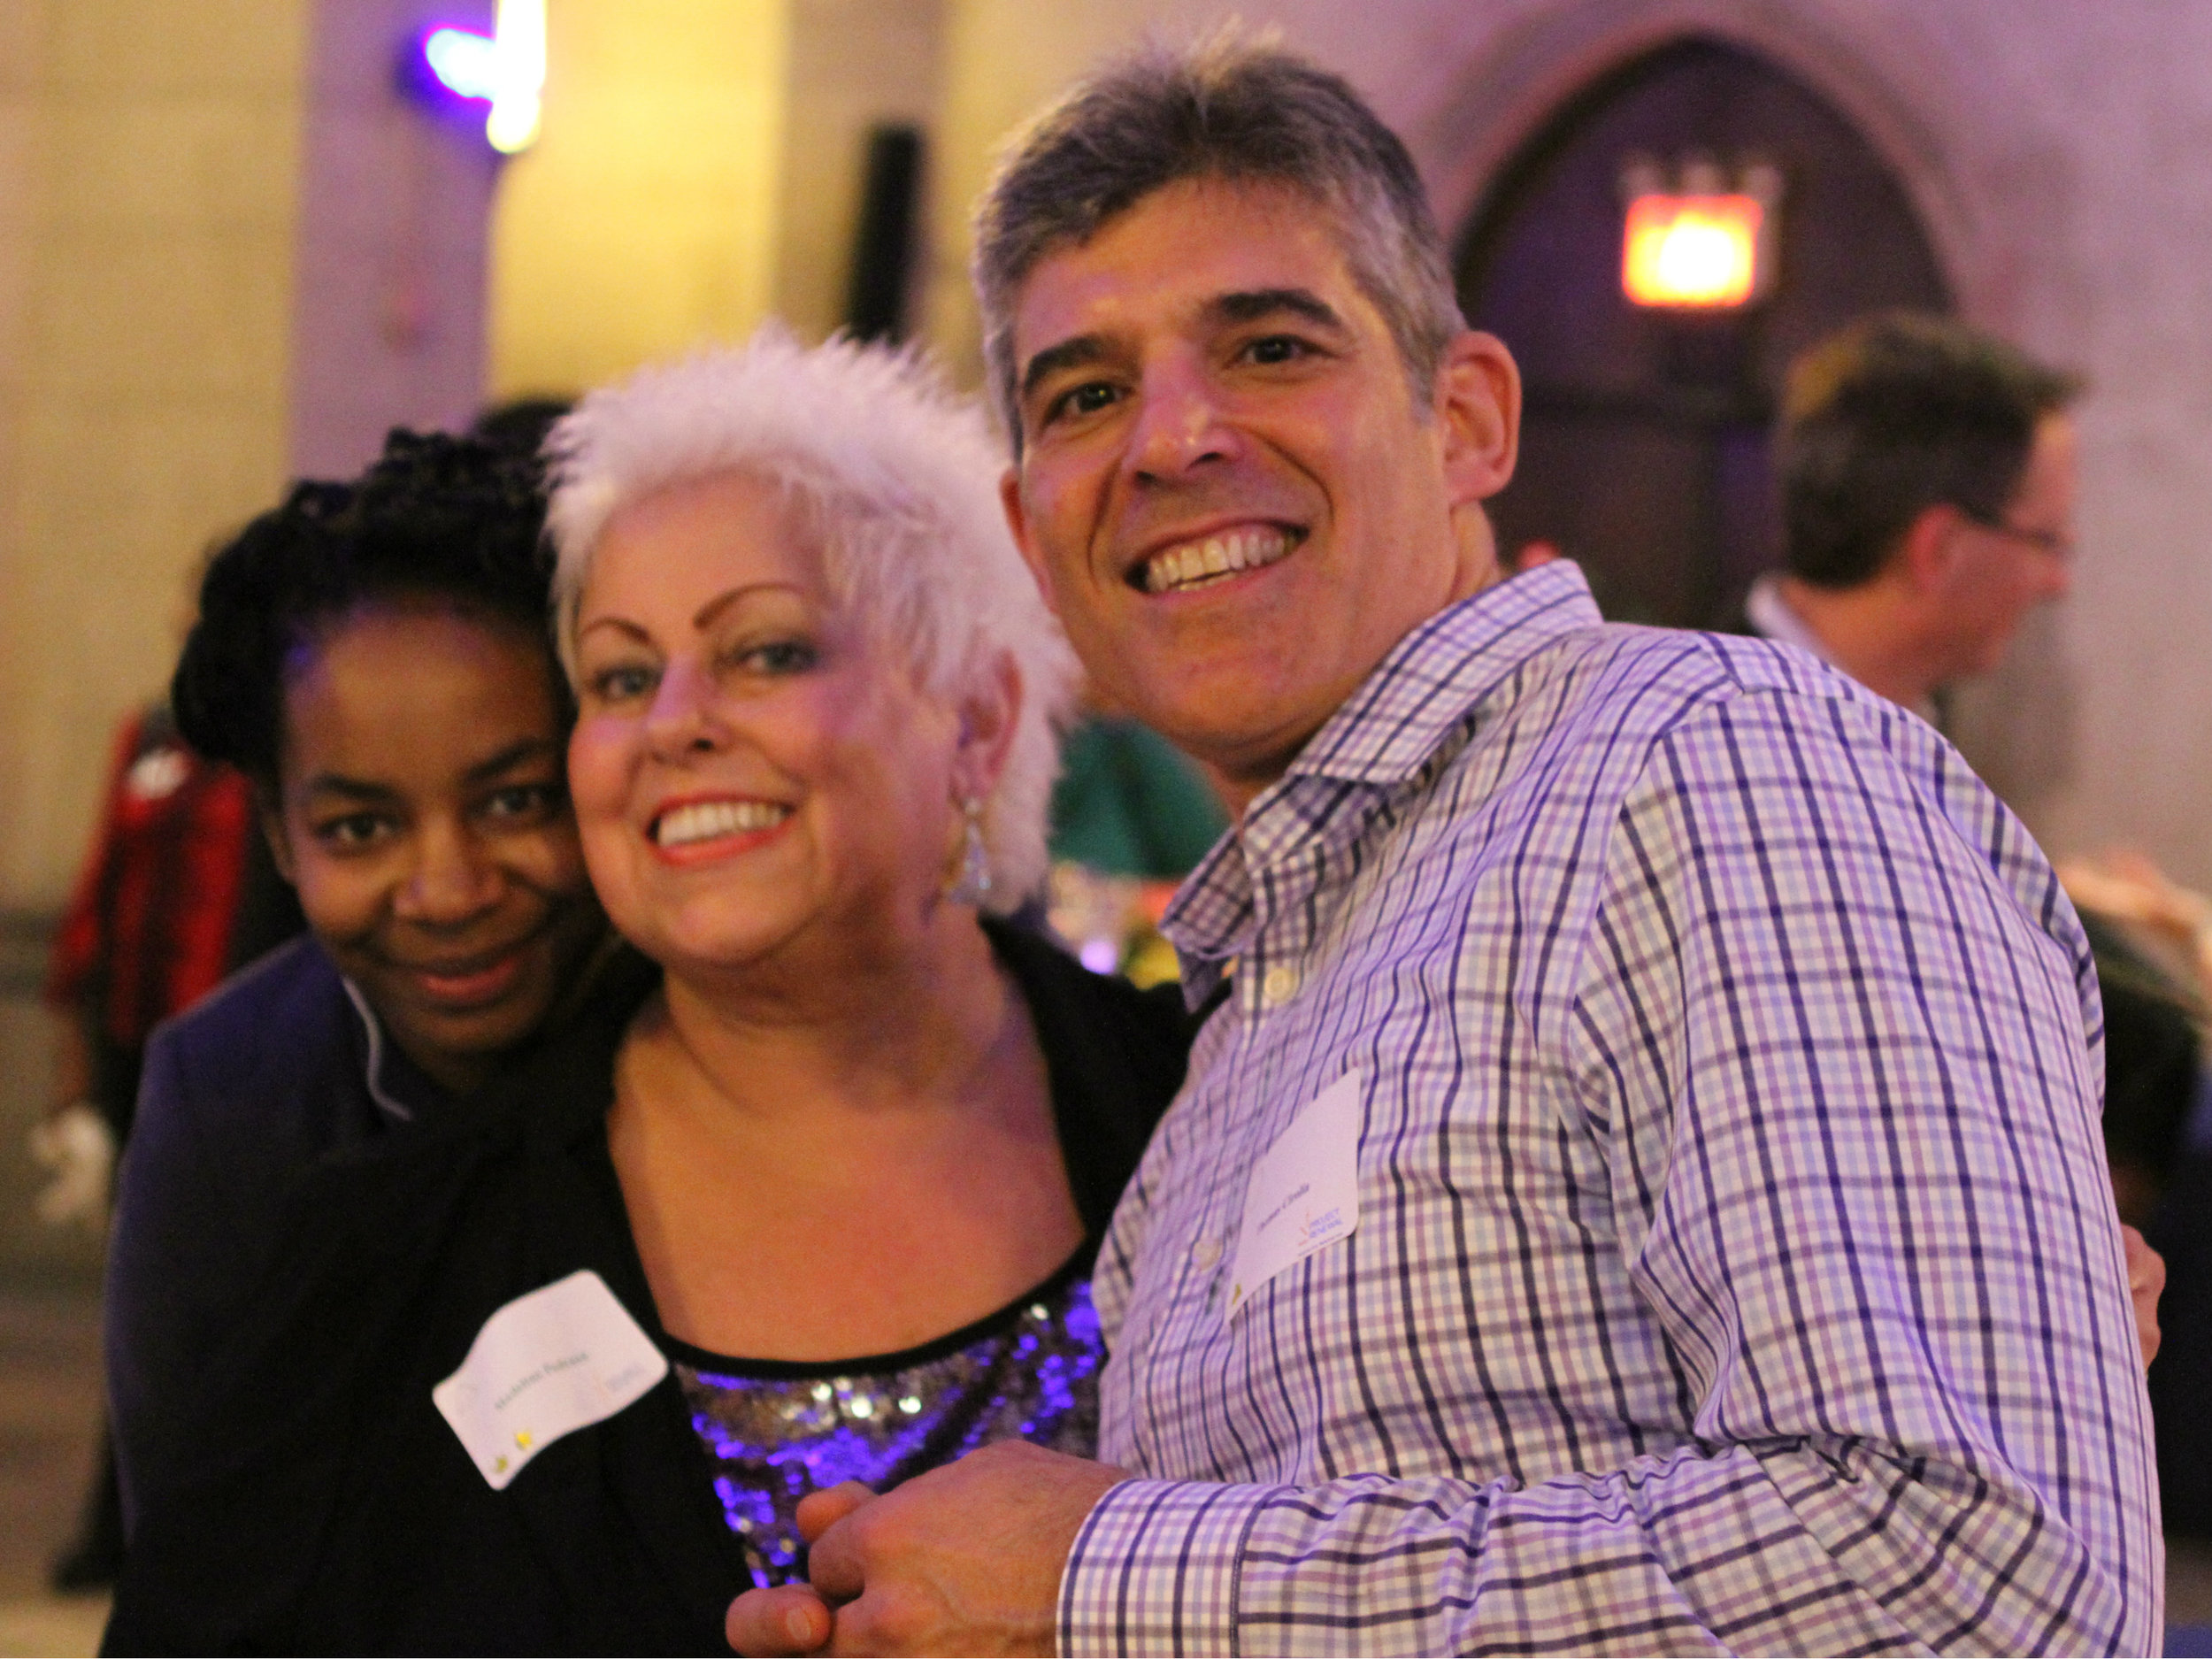 Madeline Pedraza (center) with Denise Townes (left) and Thomas Ciriolia (right).